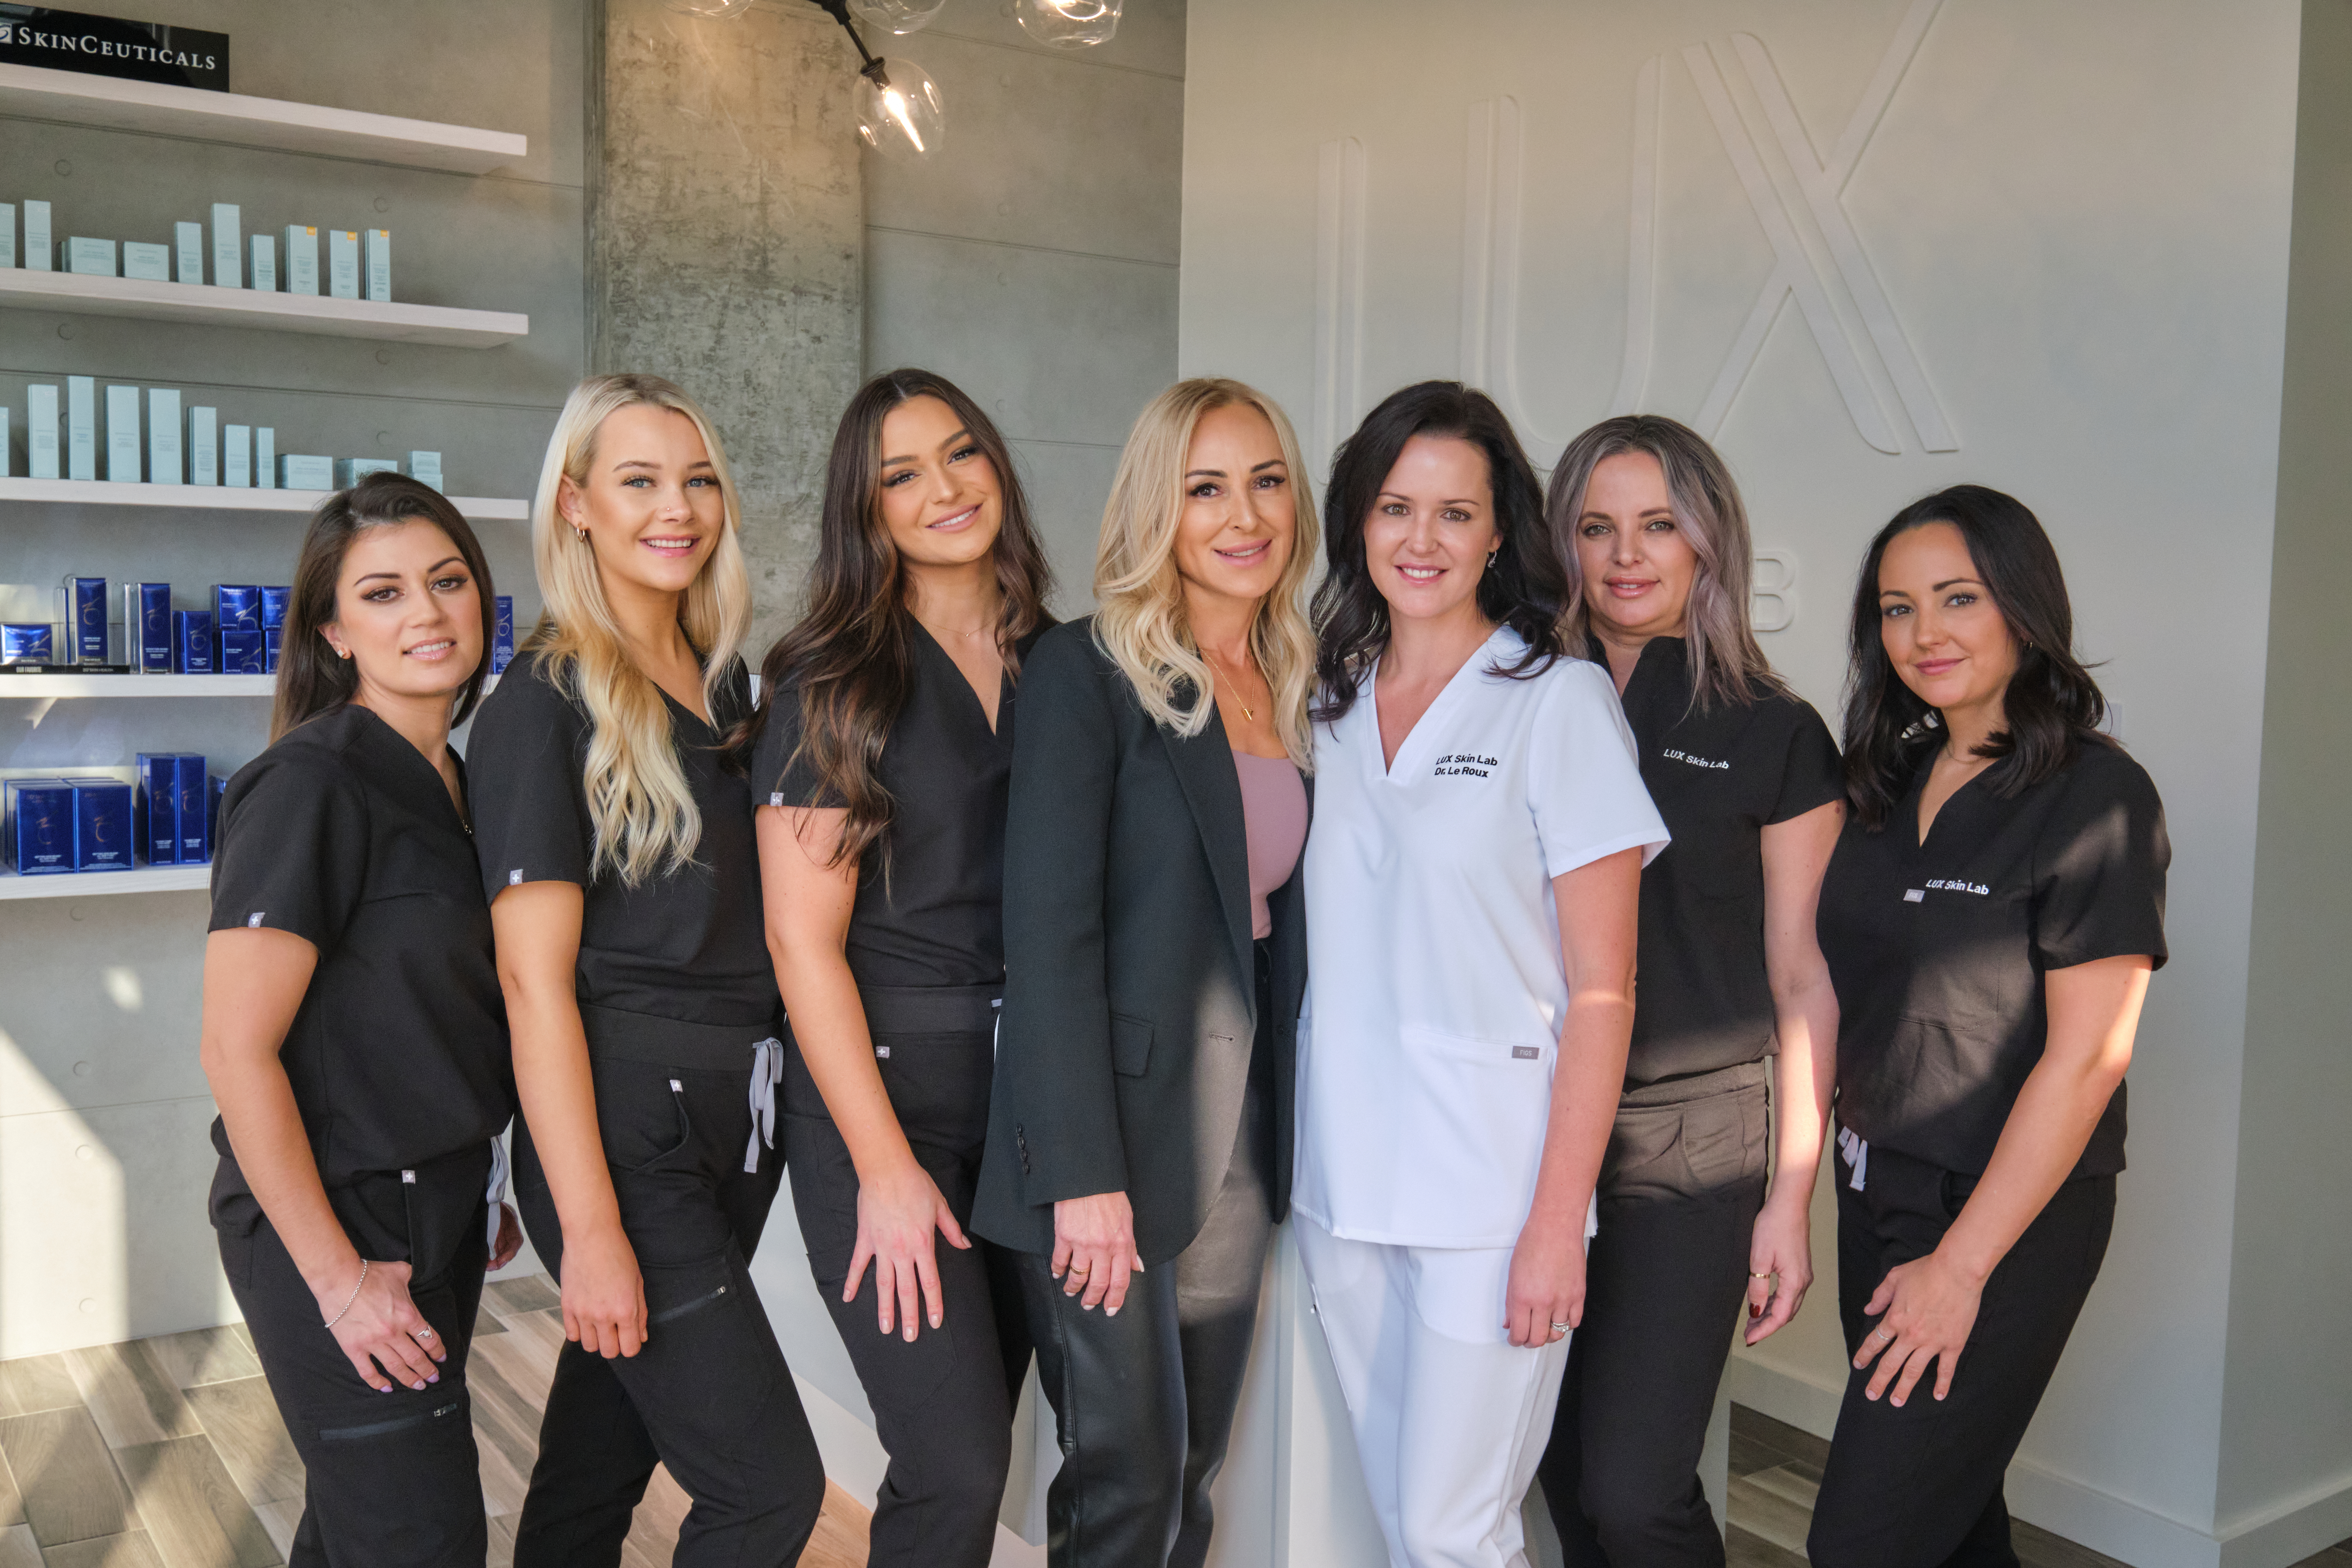 A team of skincare specialists pose for a group picture in their clinic. The seven women are all smiling.